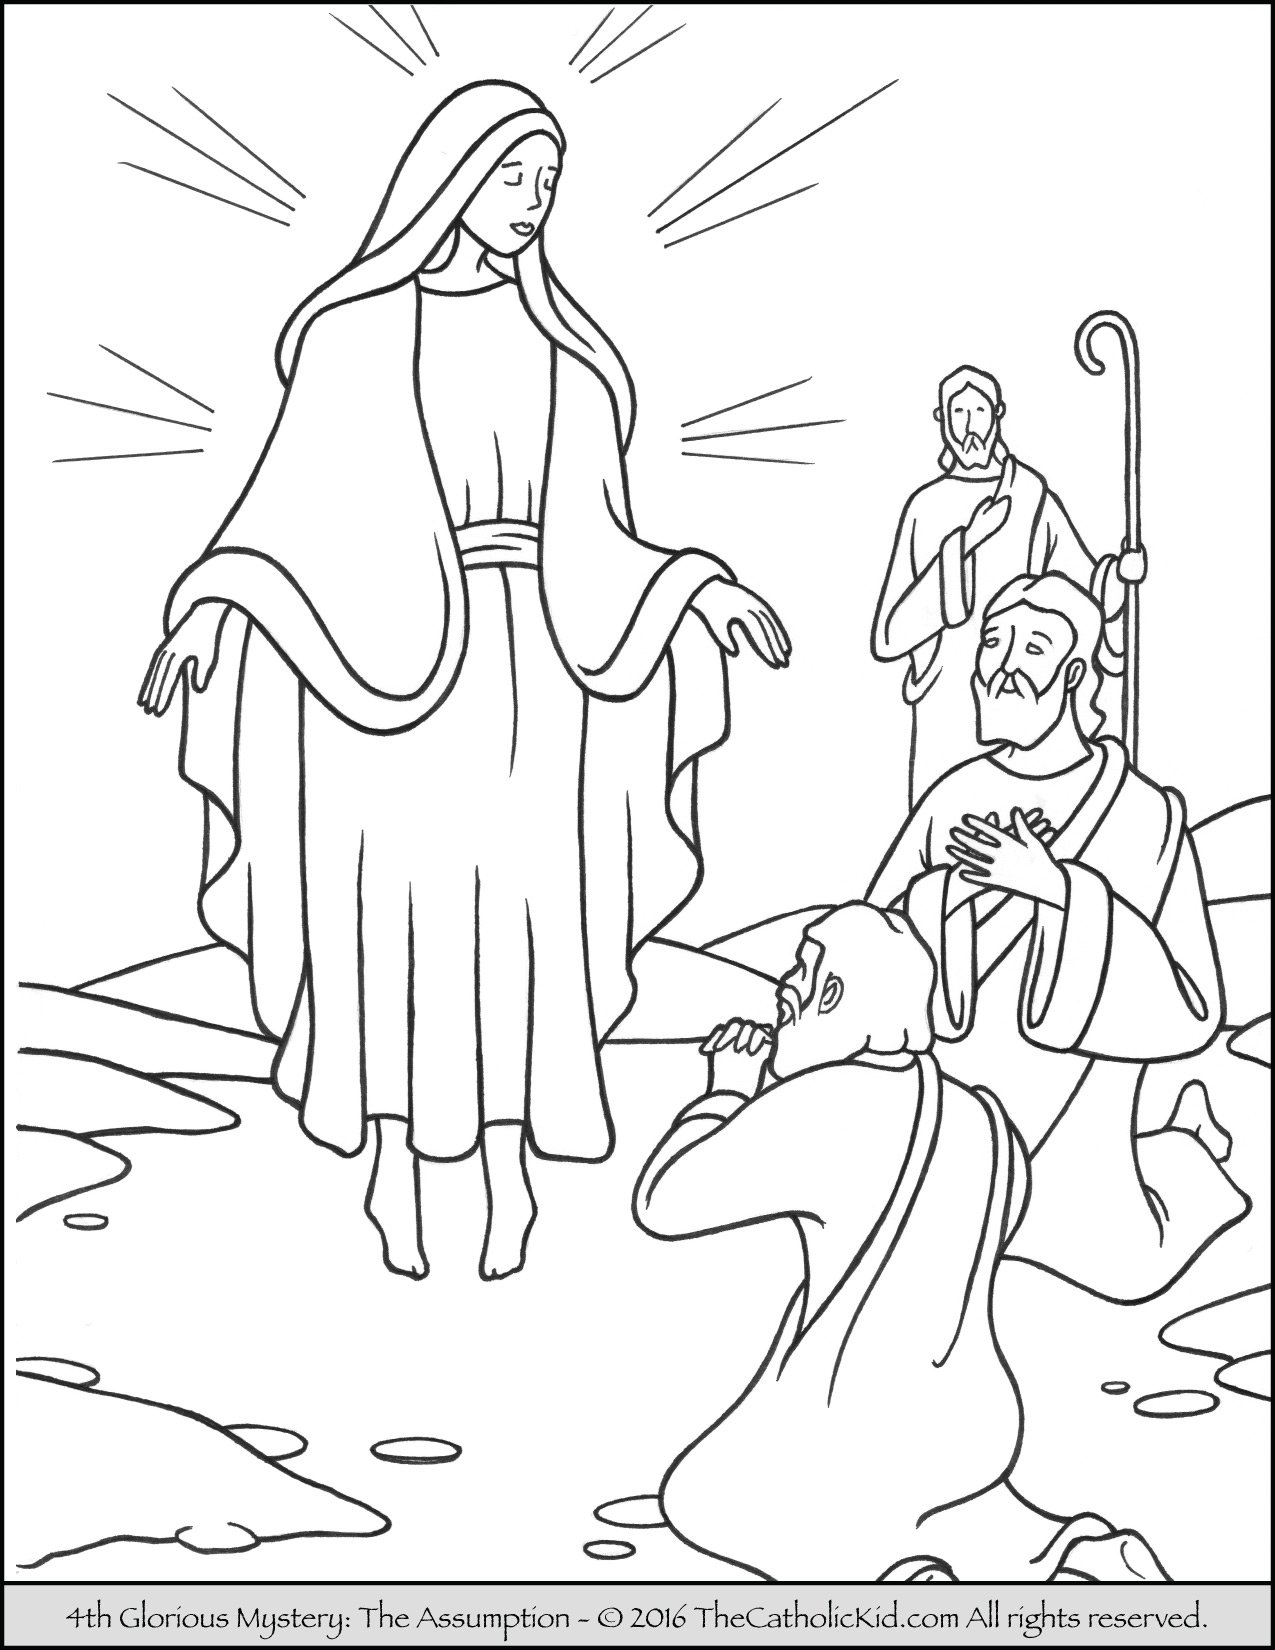 ascension of mary coloring pages - photo#9